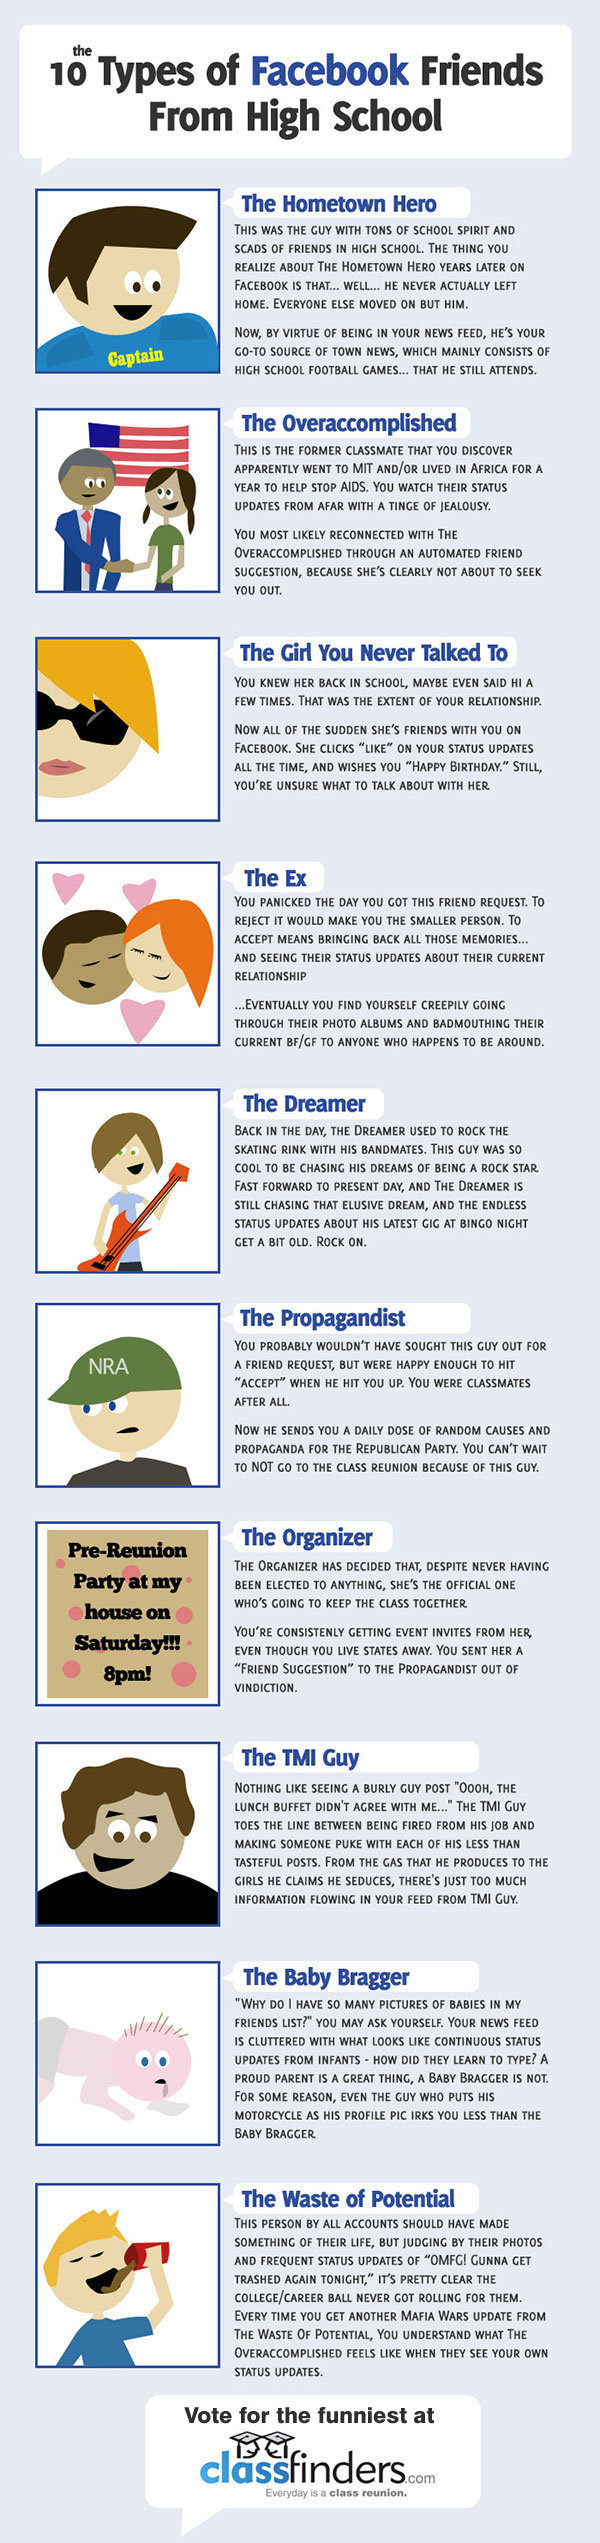 the 10 types of facebook friends from high school #infographic